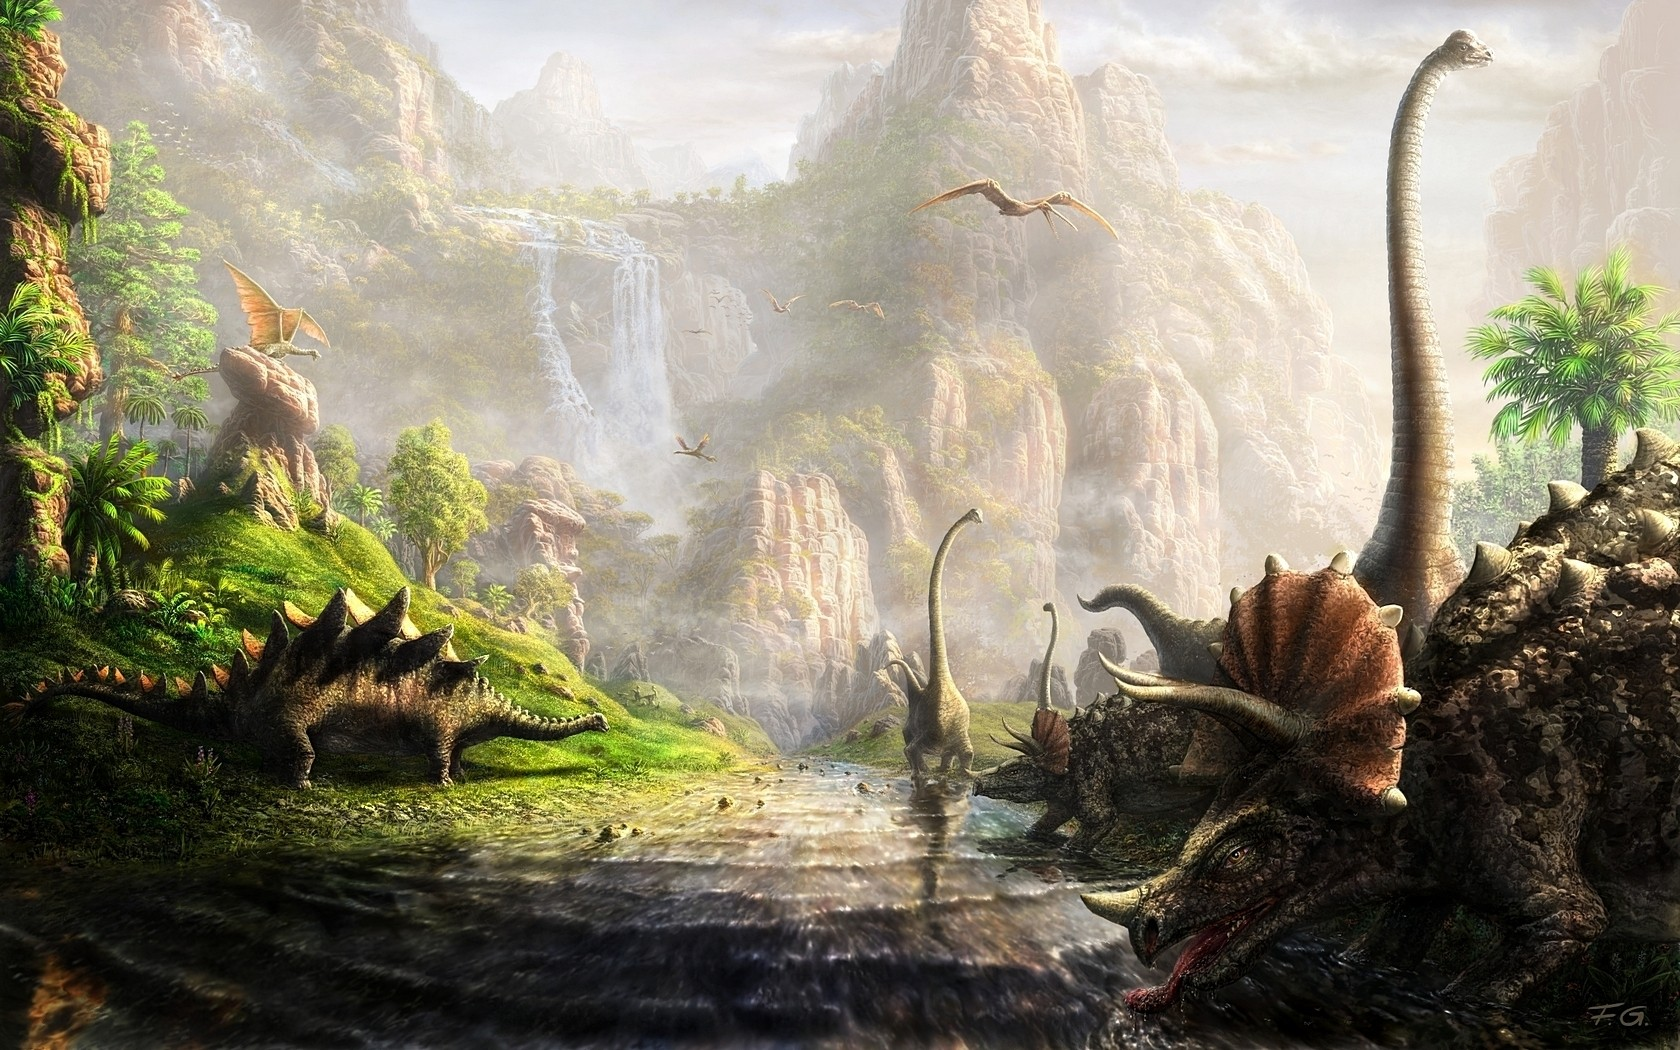 General 1680x1050 dinosaurs fantasy art Triceratops river cliff animals